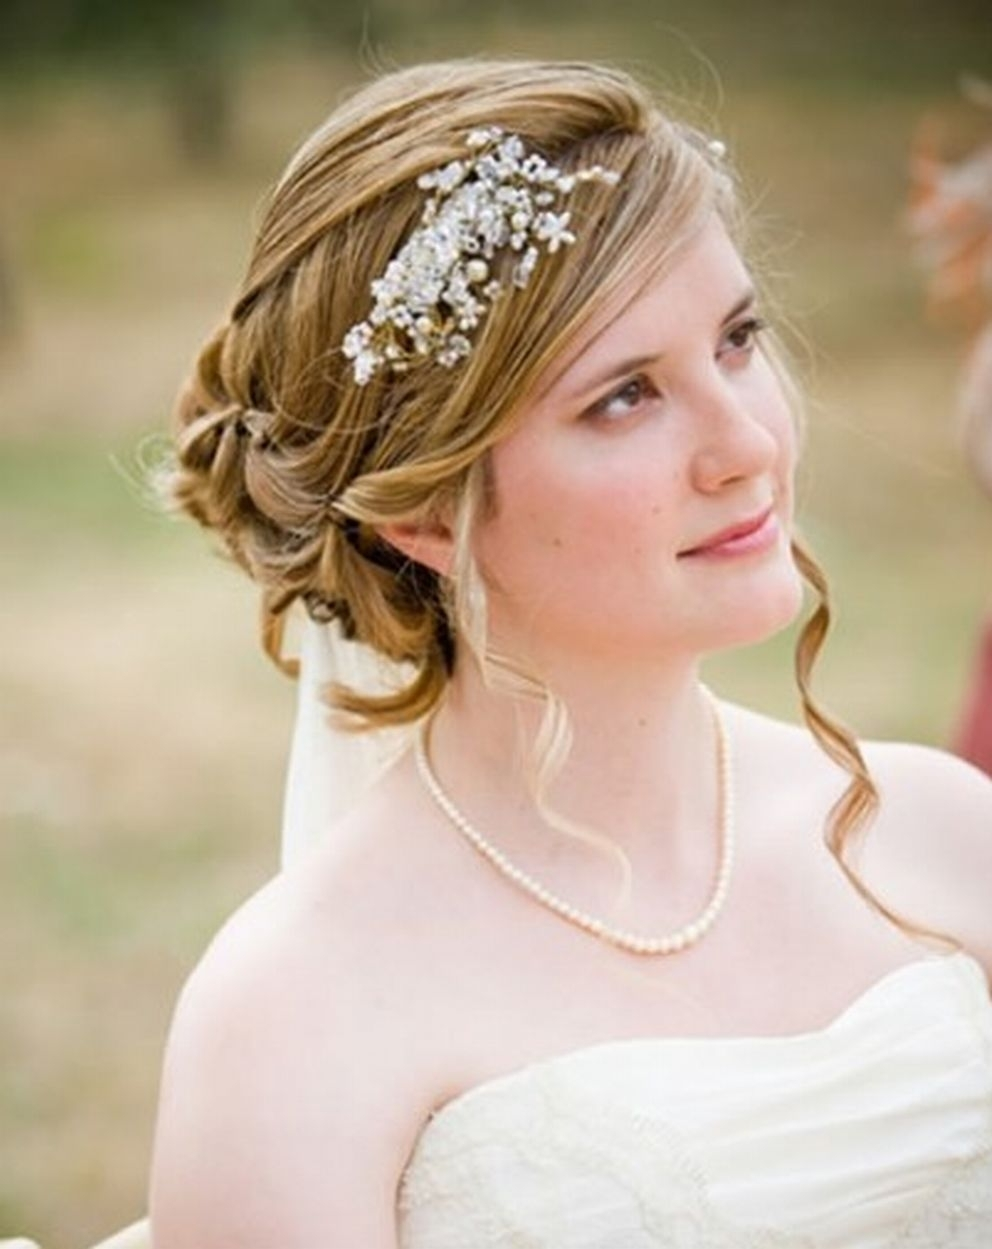 Widely Used Beach Wedding Hairstyles For Shoulder Length Hair With Regard To Best Wedding Hairstyles Bridal Medium Length Hair Picture For Beach (View 15 of 15)